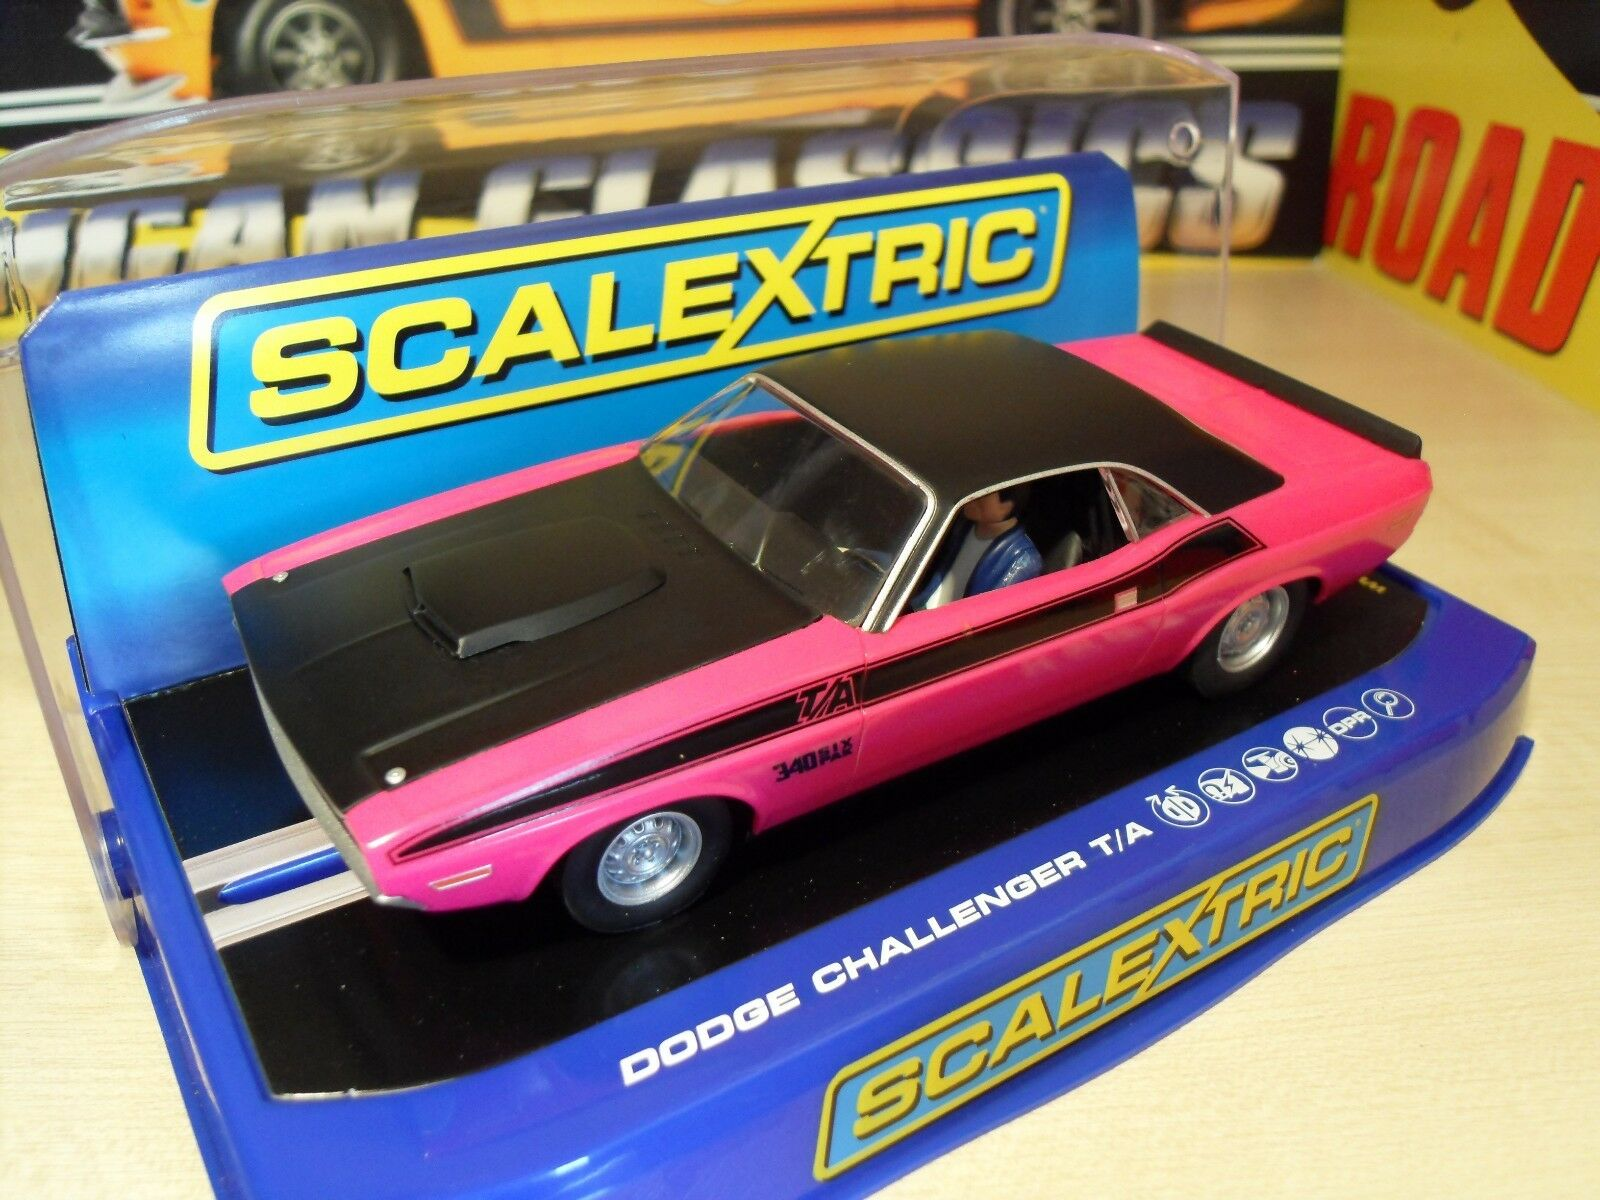 Scalextric C3537 Dodge Challenger T A '340 Six Pak' - Brand New in Box.